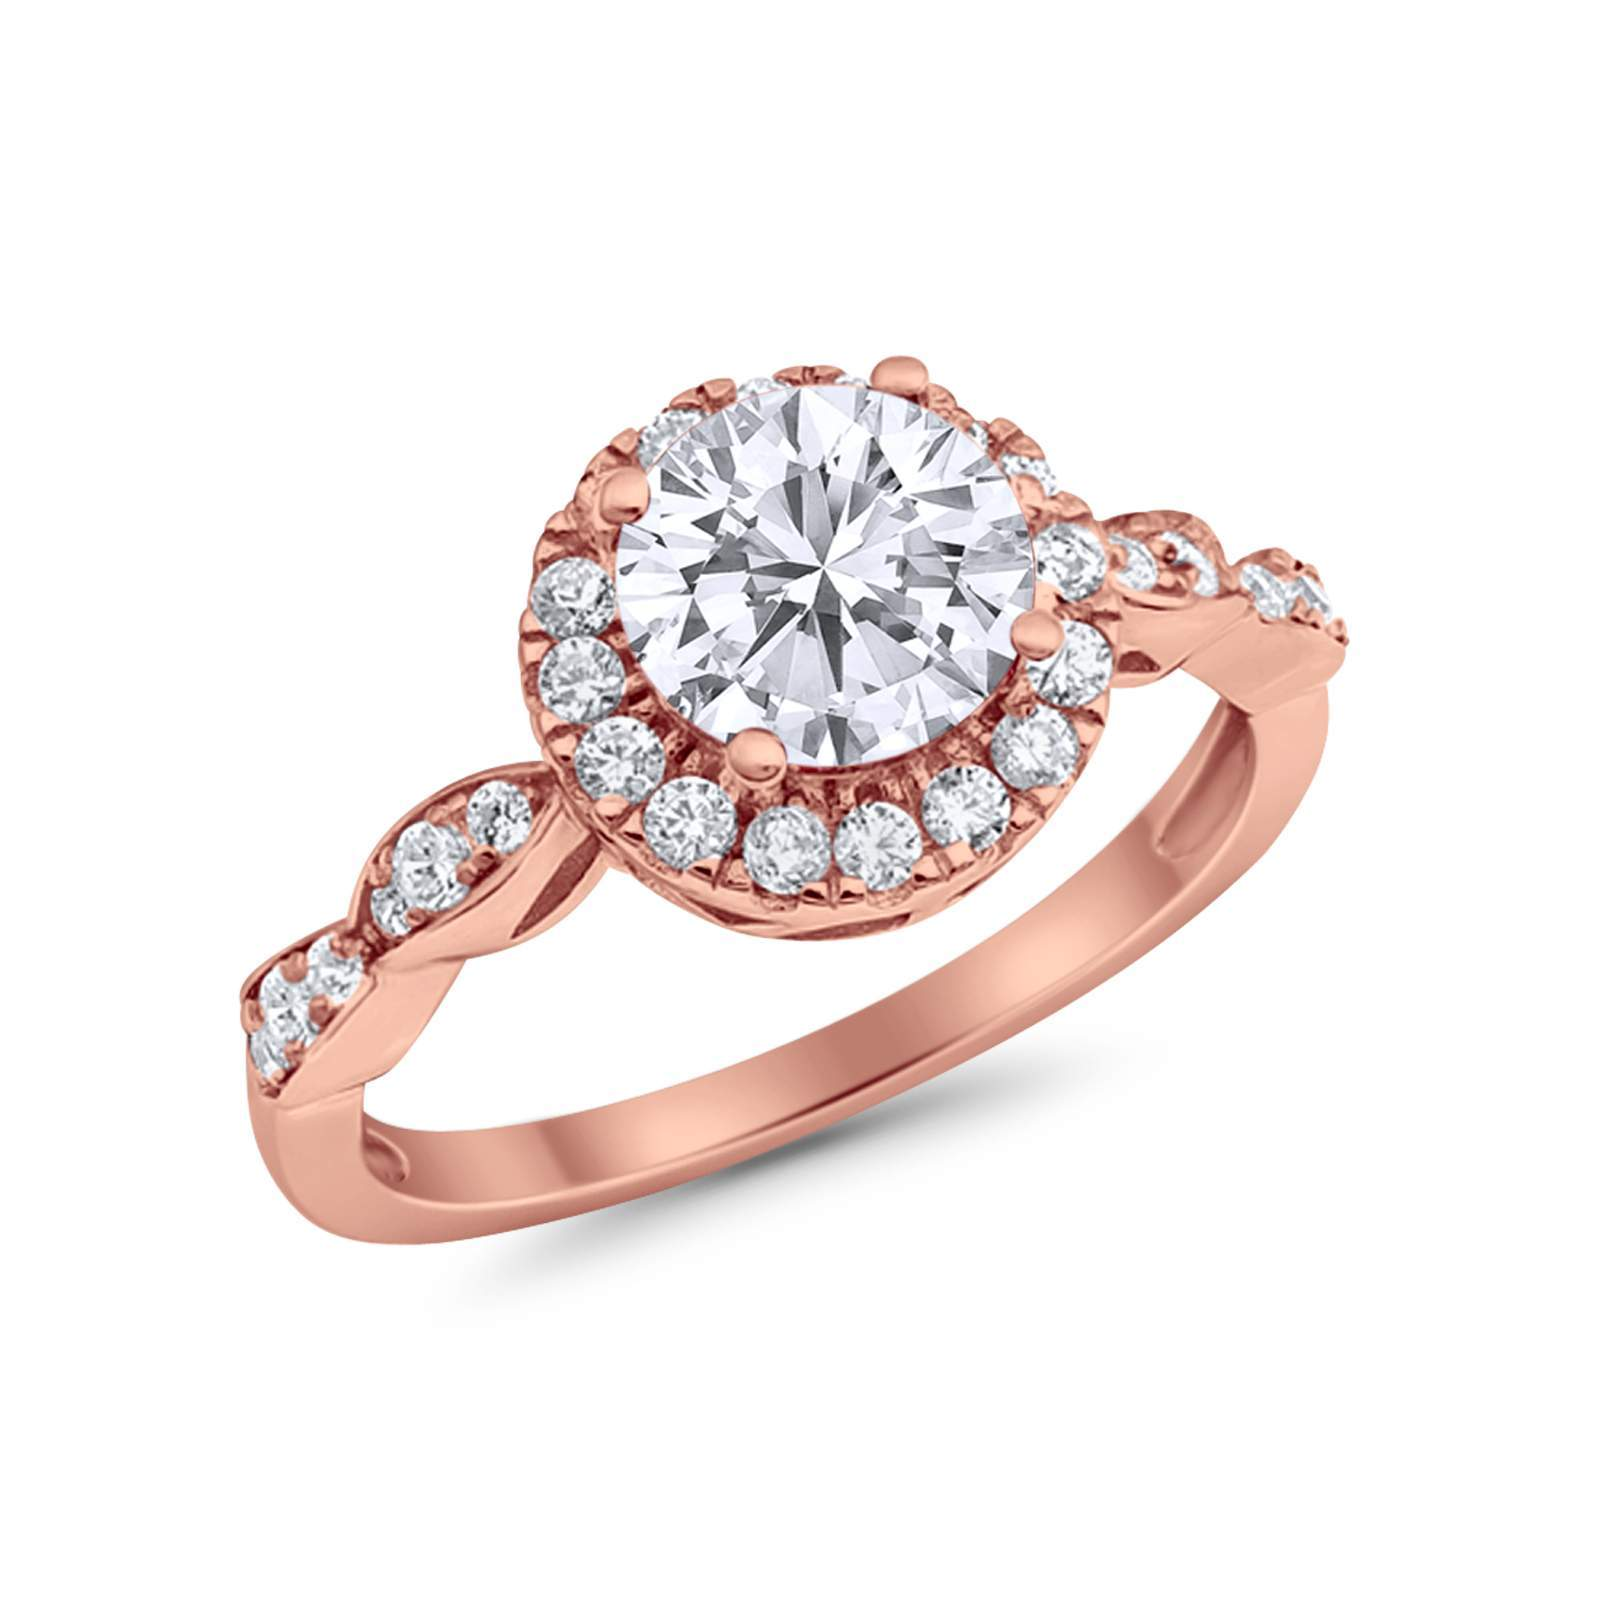 Art Deco Design Engagement Ring Rose Tone, Simulated Cubic Zirconia 925 Sterling Silver